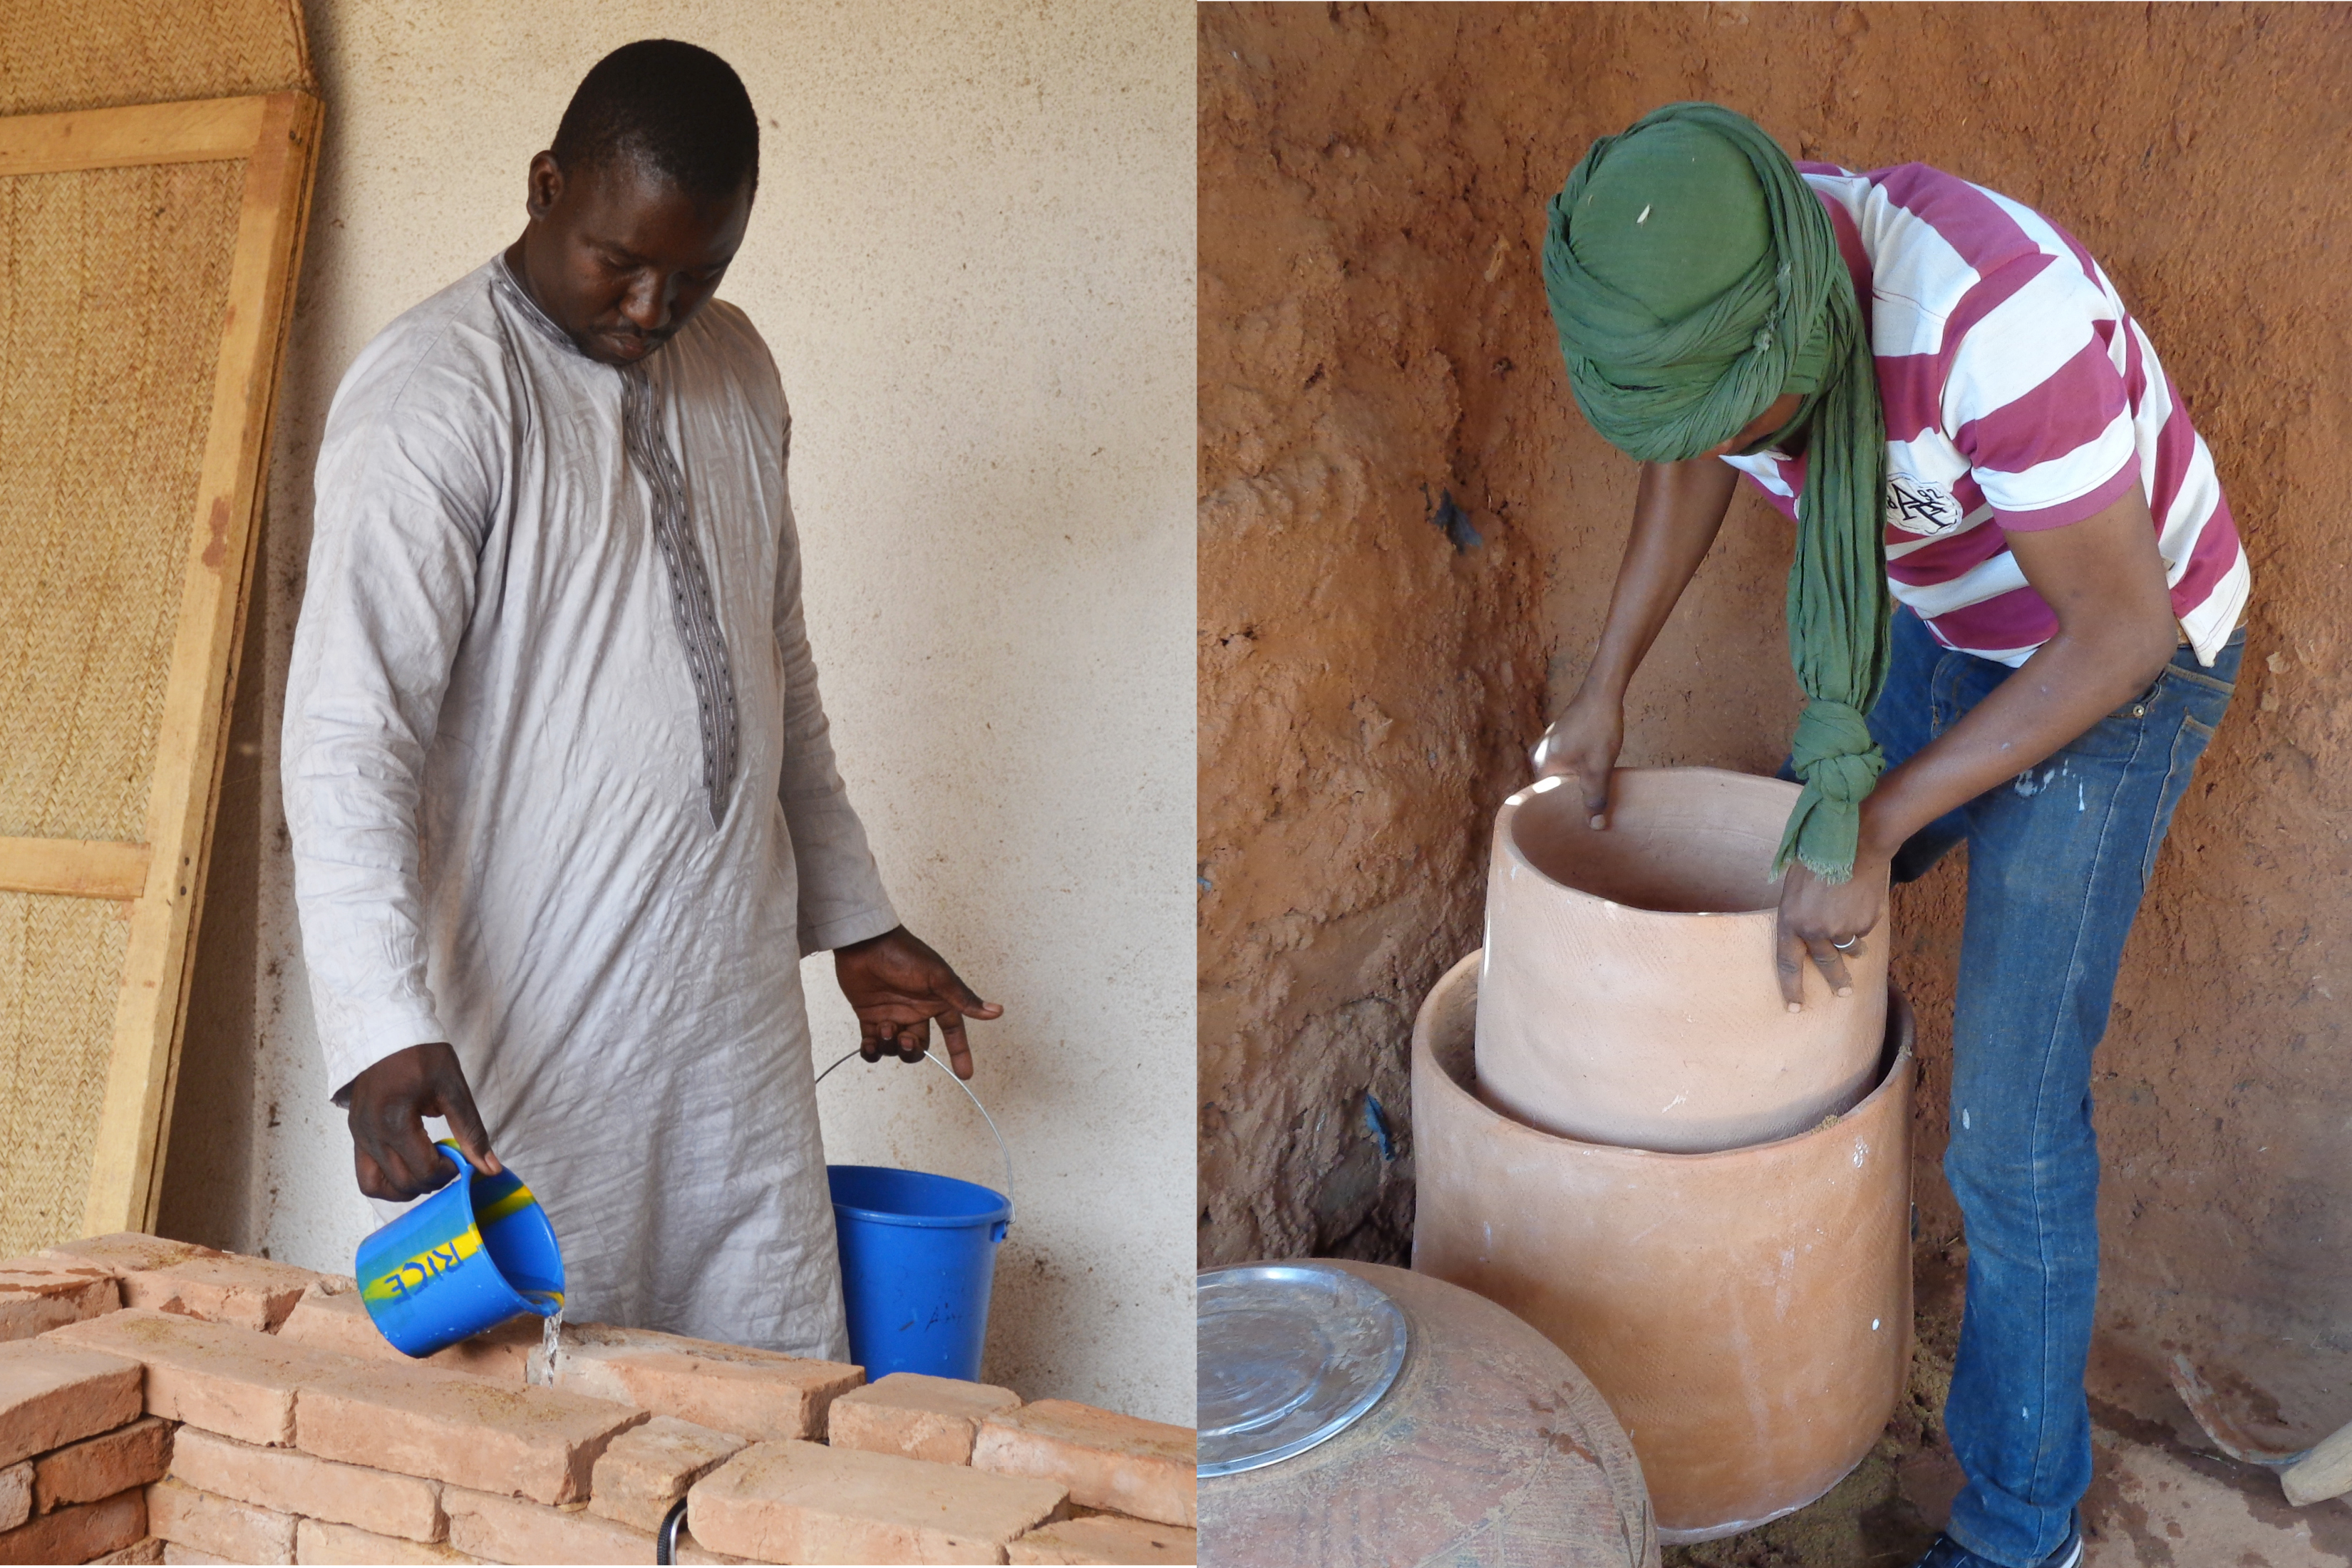 """Evaporative Cooling Technologies for Improved Vegetable Storage in Mali"" is a new report from MIT D-Lab and CITE. At left, University of Bamako graduate student Aliou Coulibaly adds water to an evaporative cooling chamber in Bamako. At right, World Vegetable Center technician Fatogoma Tanou assembles a clay pot cooler in Mopti."